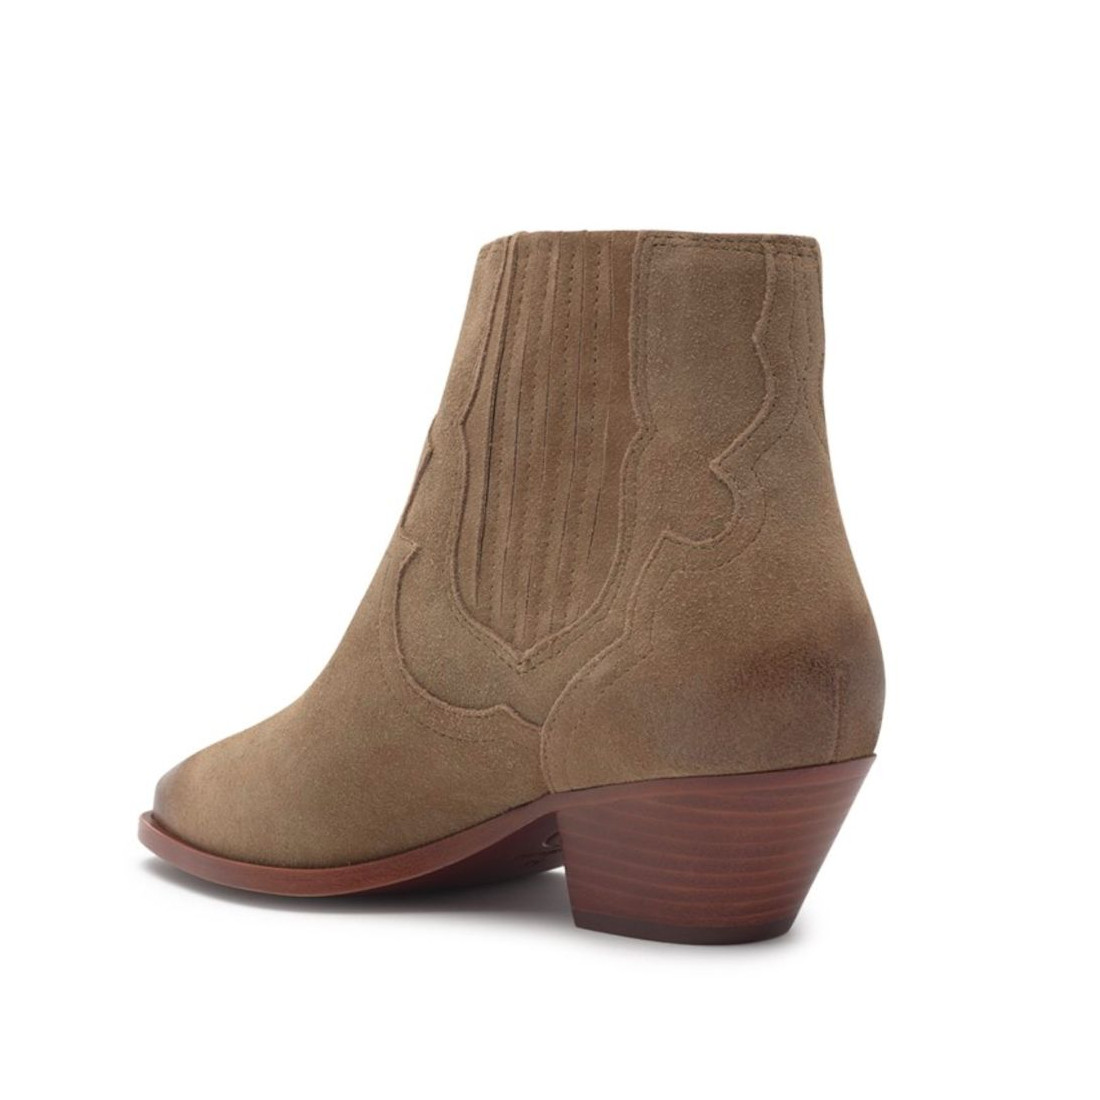 booties woman ash falcon06 baby soft wilde 7986